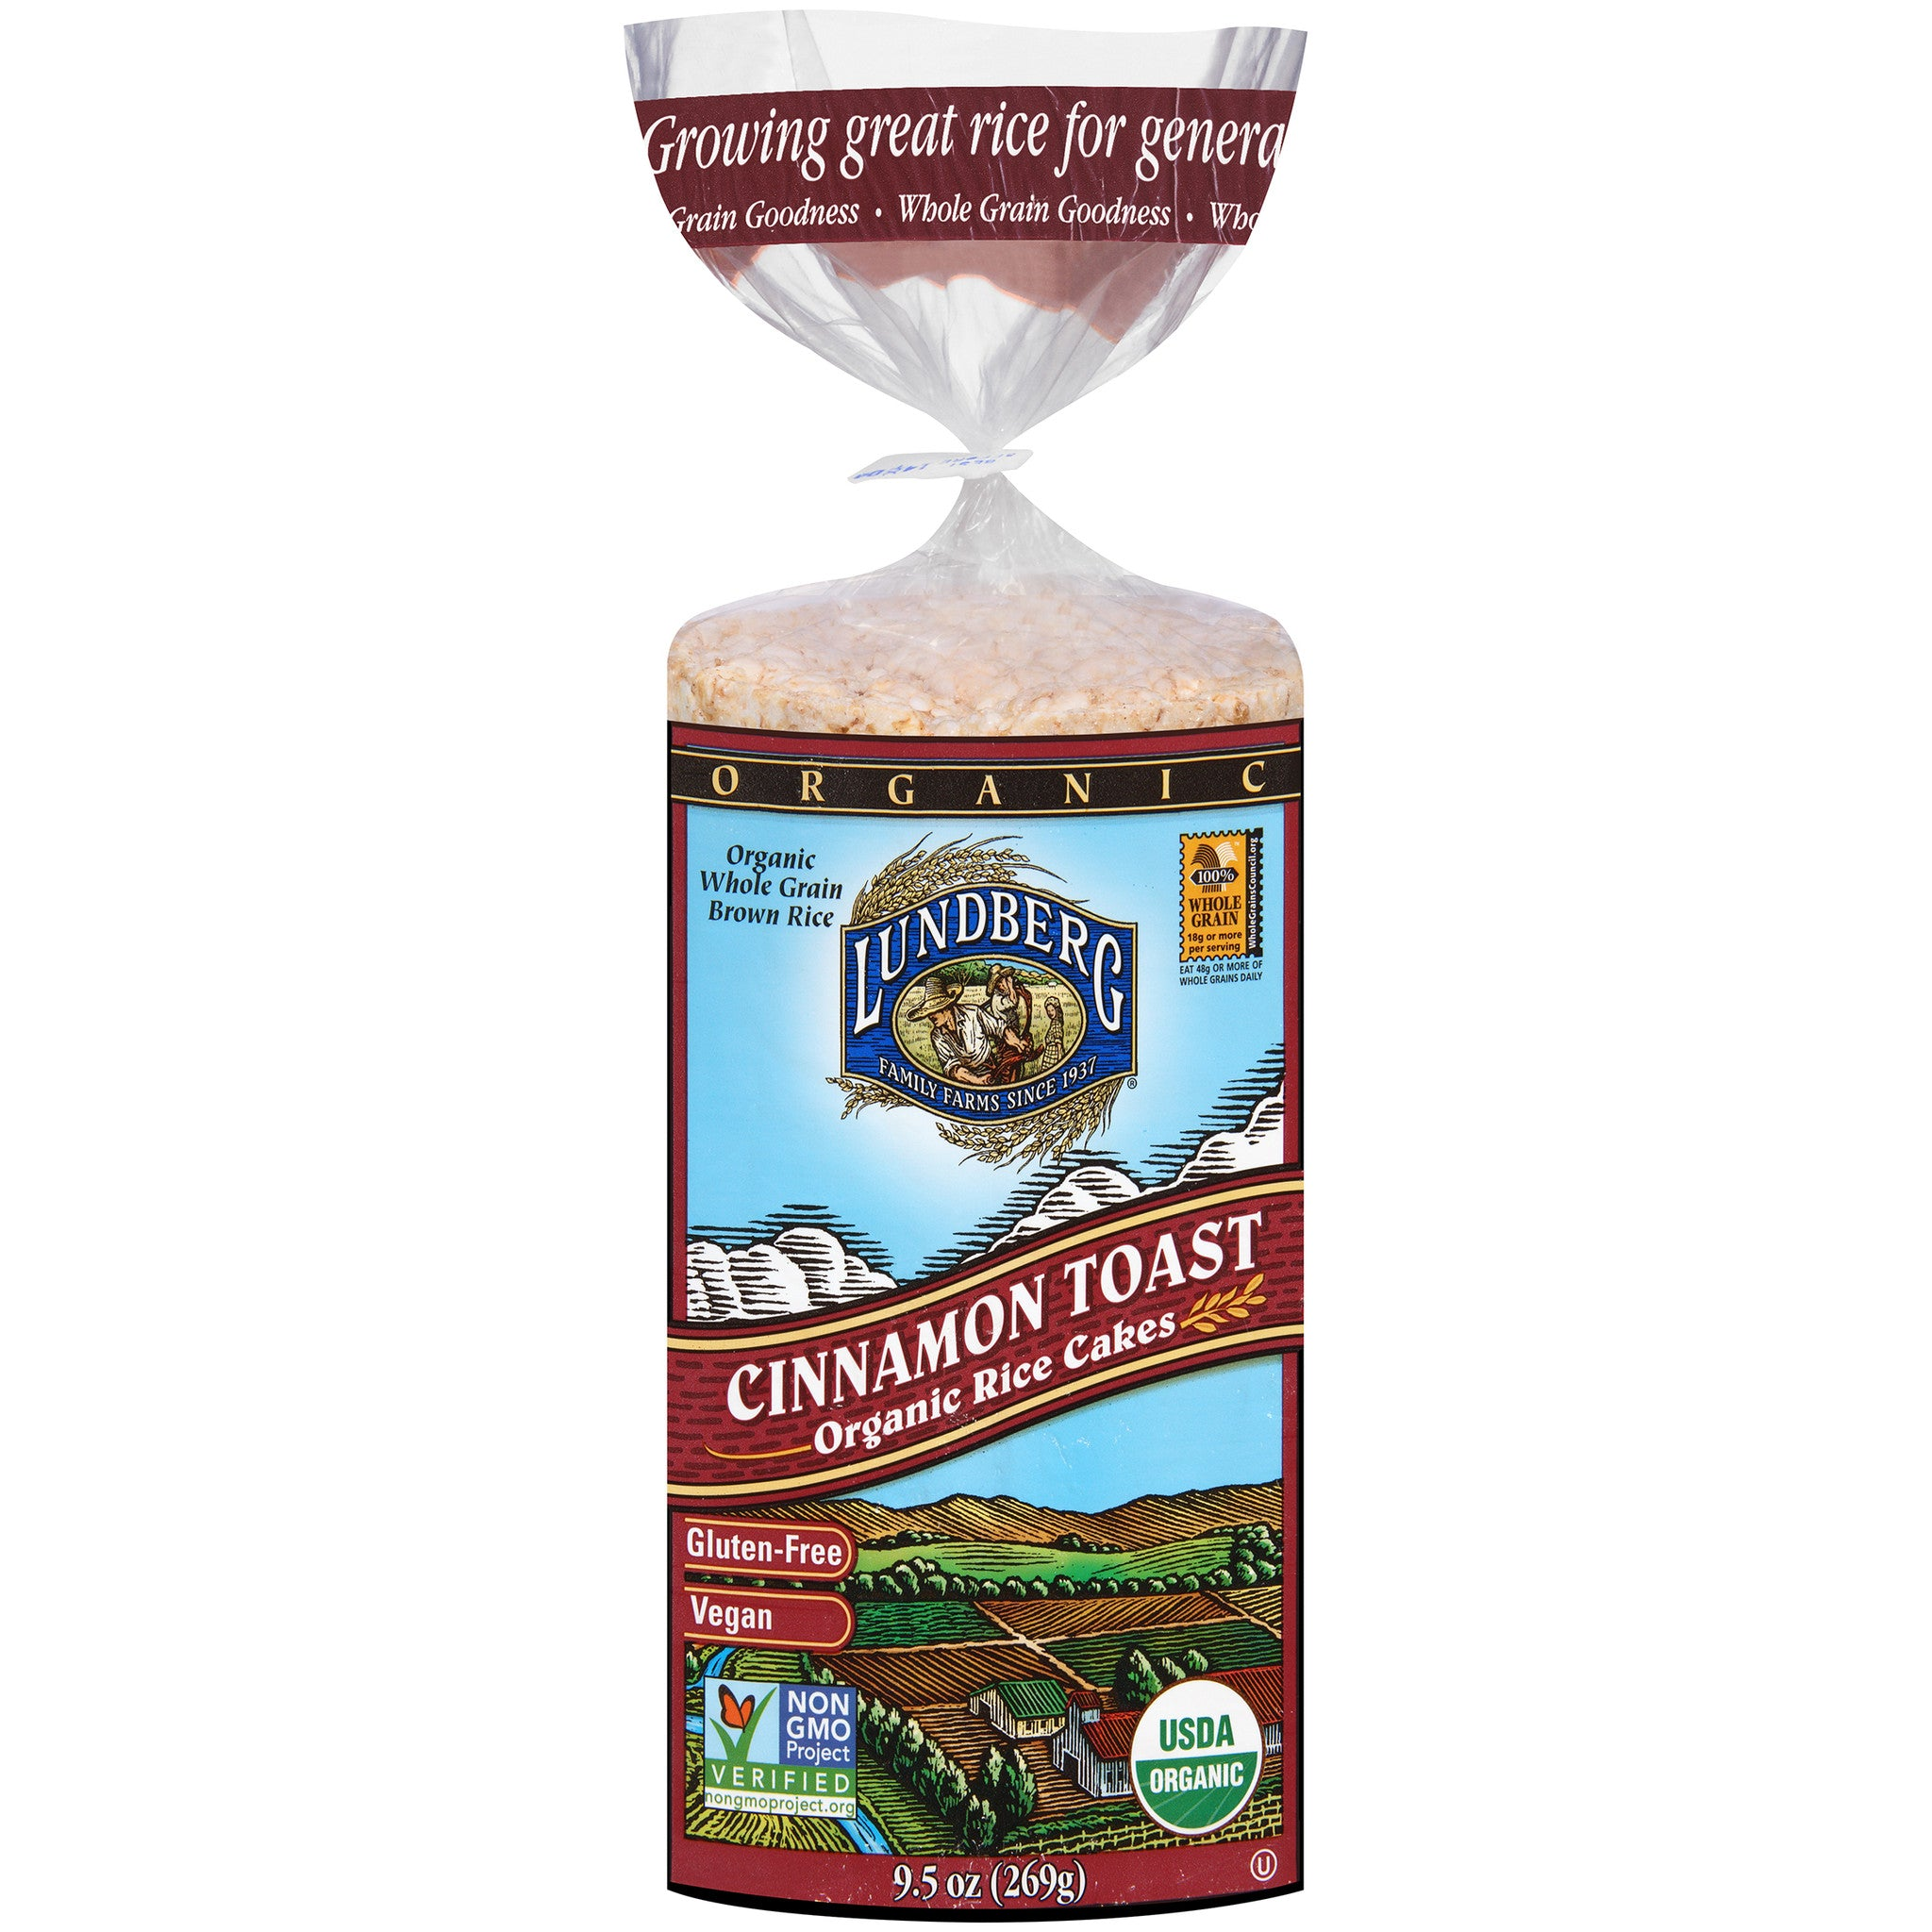 Lundberg Family Farms Rice Cake Cinnamon Toast